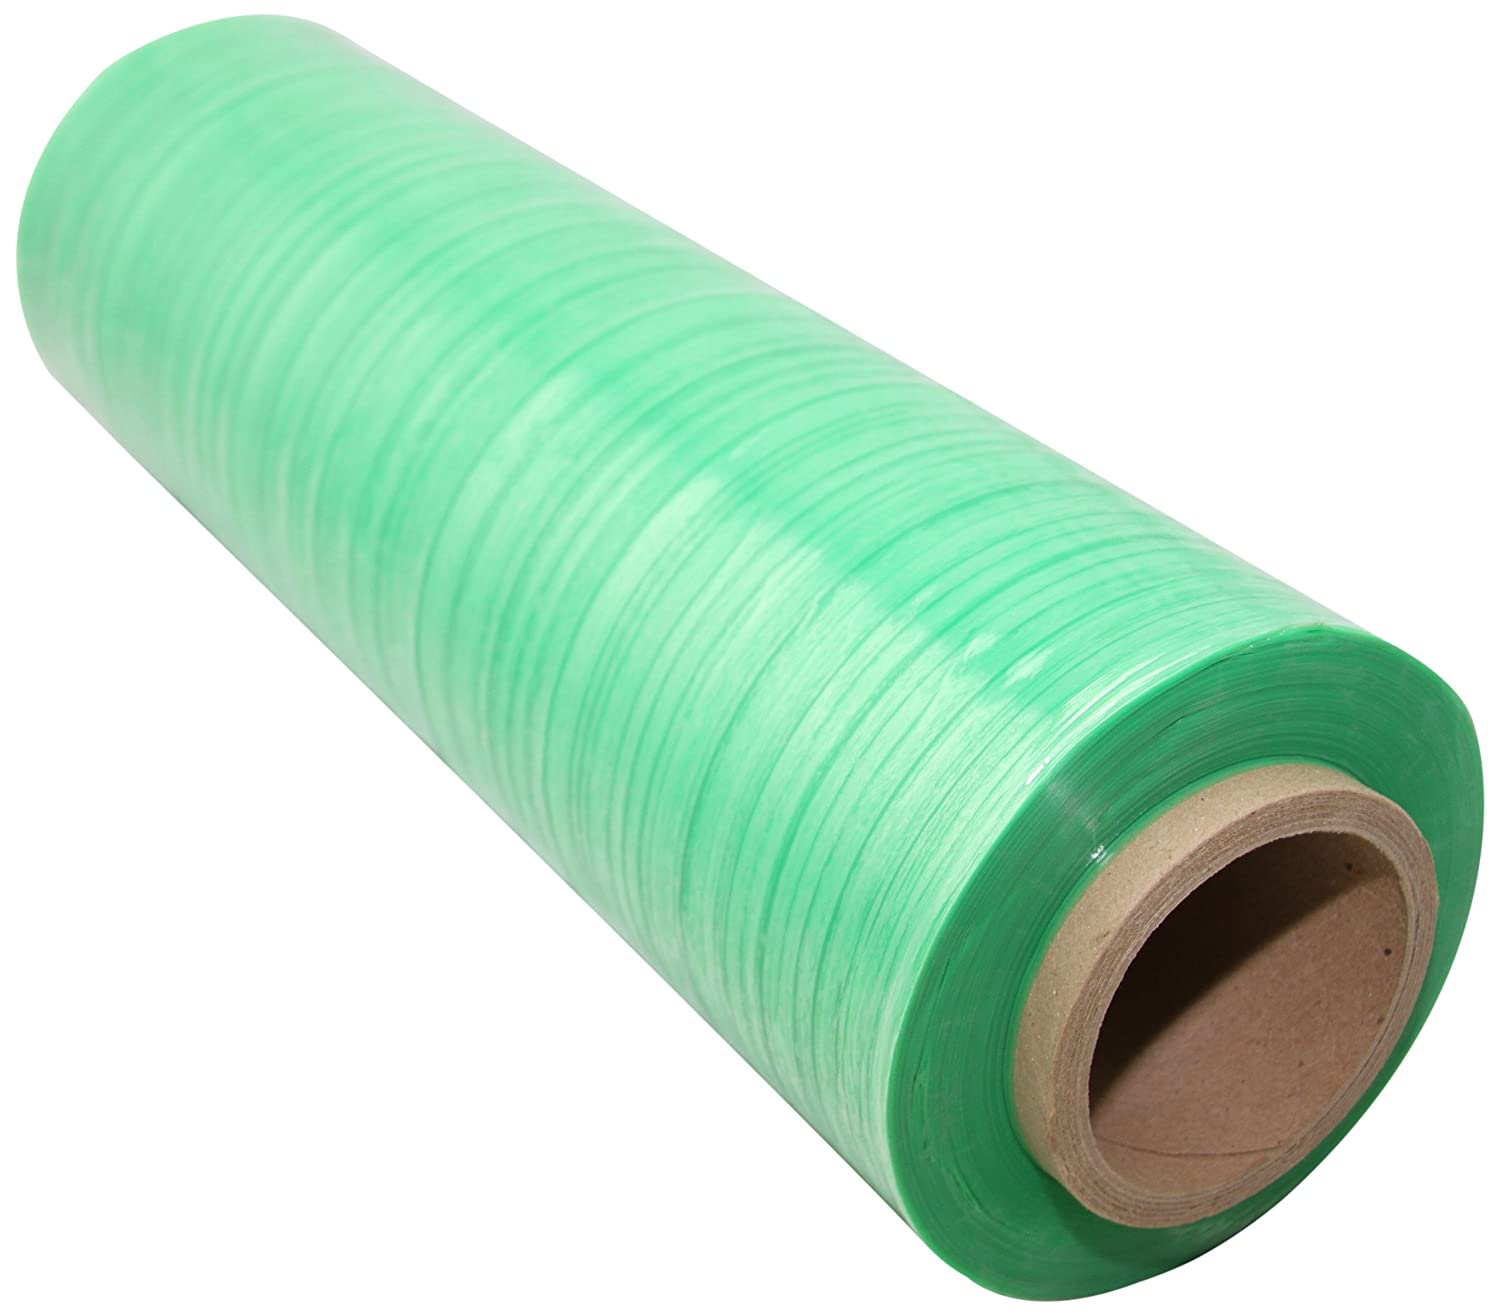 Goodwrappers OXOV18904 Linear Low Density Polyethylene OXO Biodegradable Green Tint Cast Hand Stretch Wrap On a 3 I.D. Core, 1500 Length x 18 Width x 90 Gauge Thick (Case of 4)